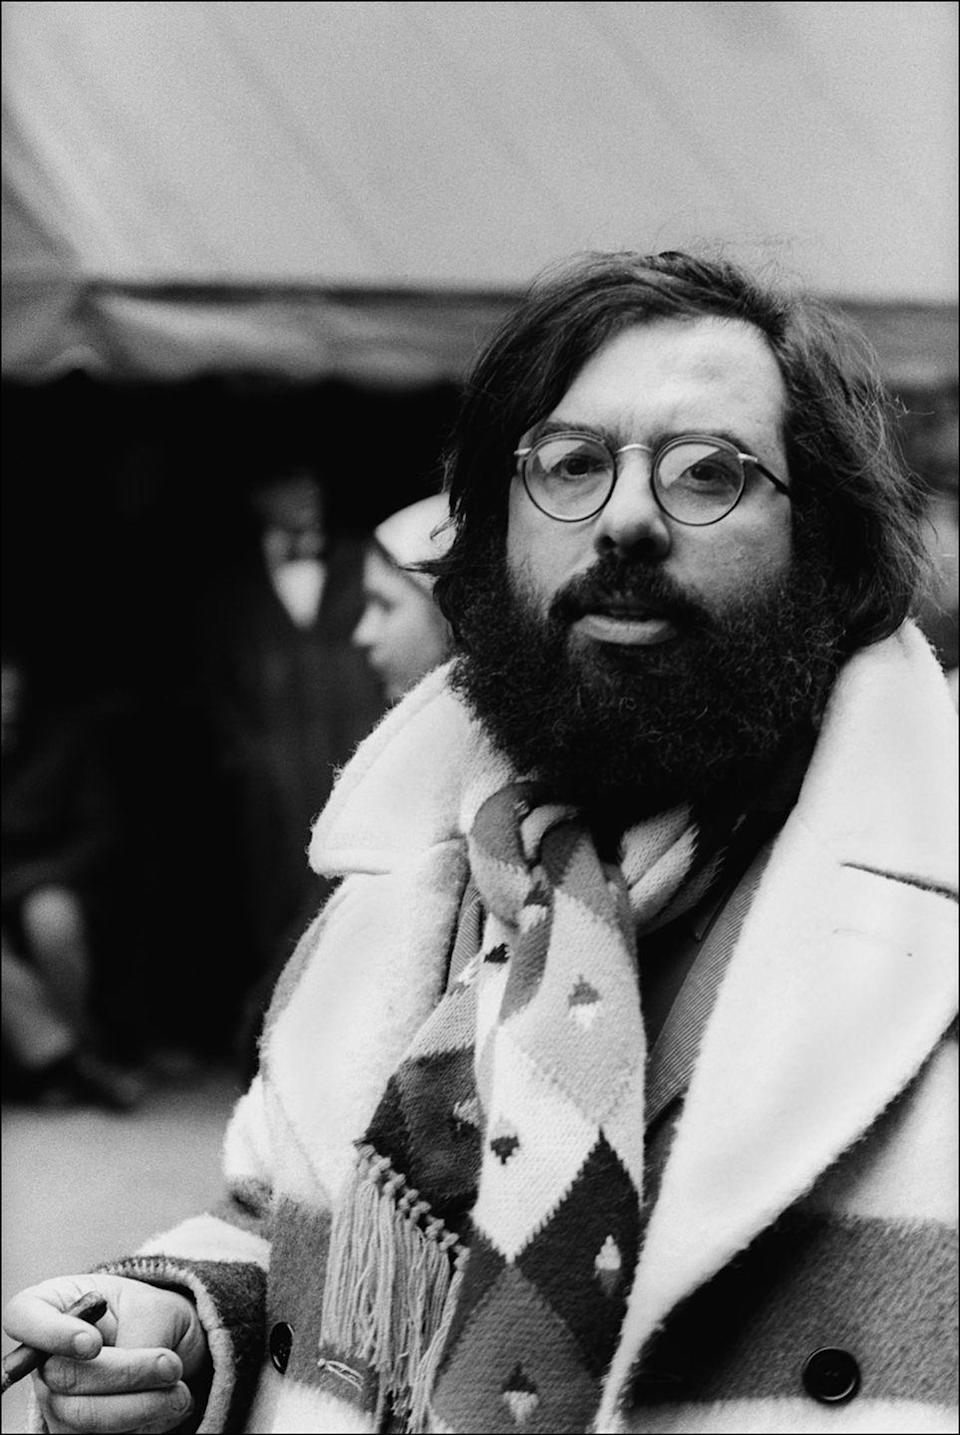 <p>Director Francis Ford Coppola on set of <em>The Godfather</em>. Coppola had already made a name for himself after directing <em>Finian's Rainbow</em> in 1968 and <em>Patton </em>in 1970. However, he reached meteoric success when <em>The Godfather</em> premiered in 1972. </p>